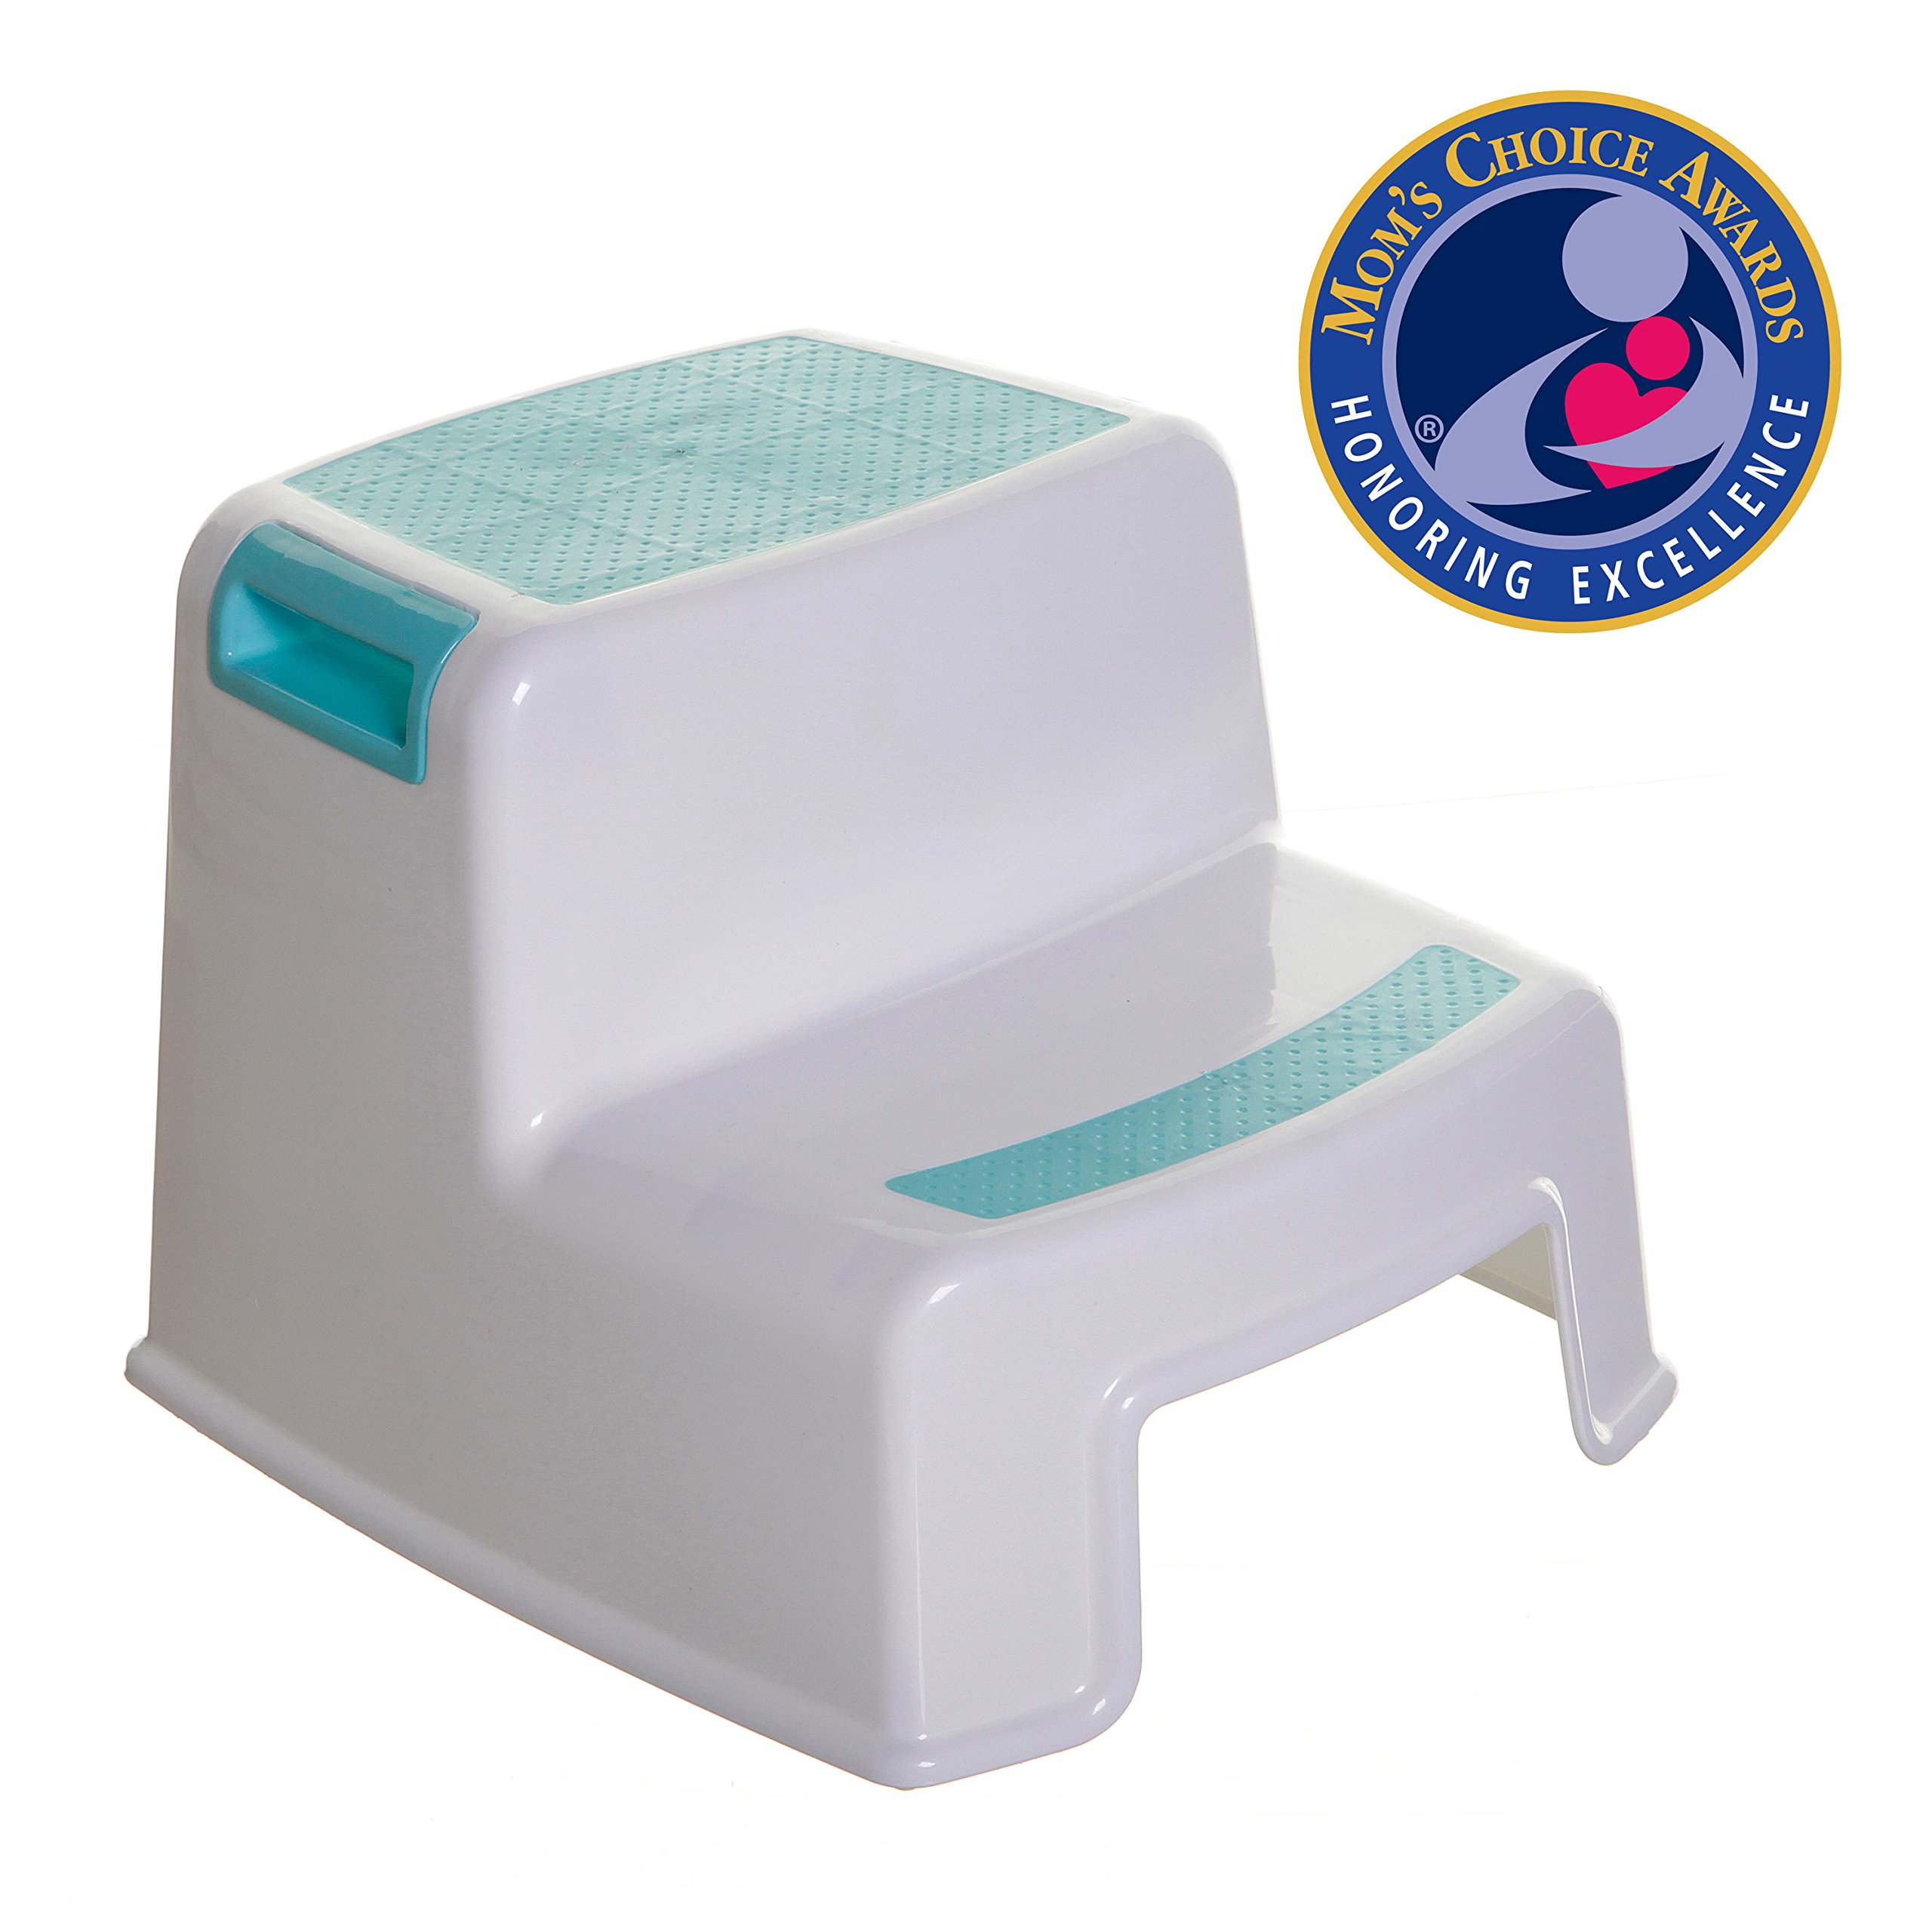 Dreambaby L685 2-Step Stool - White/Aqua